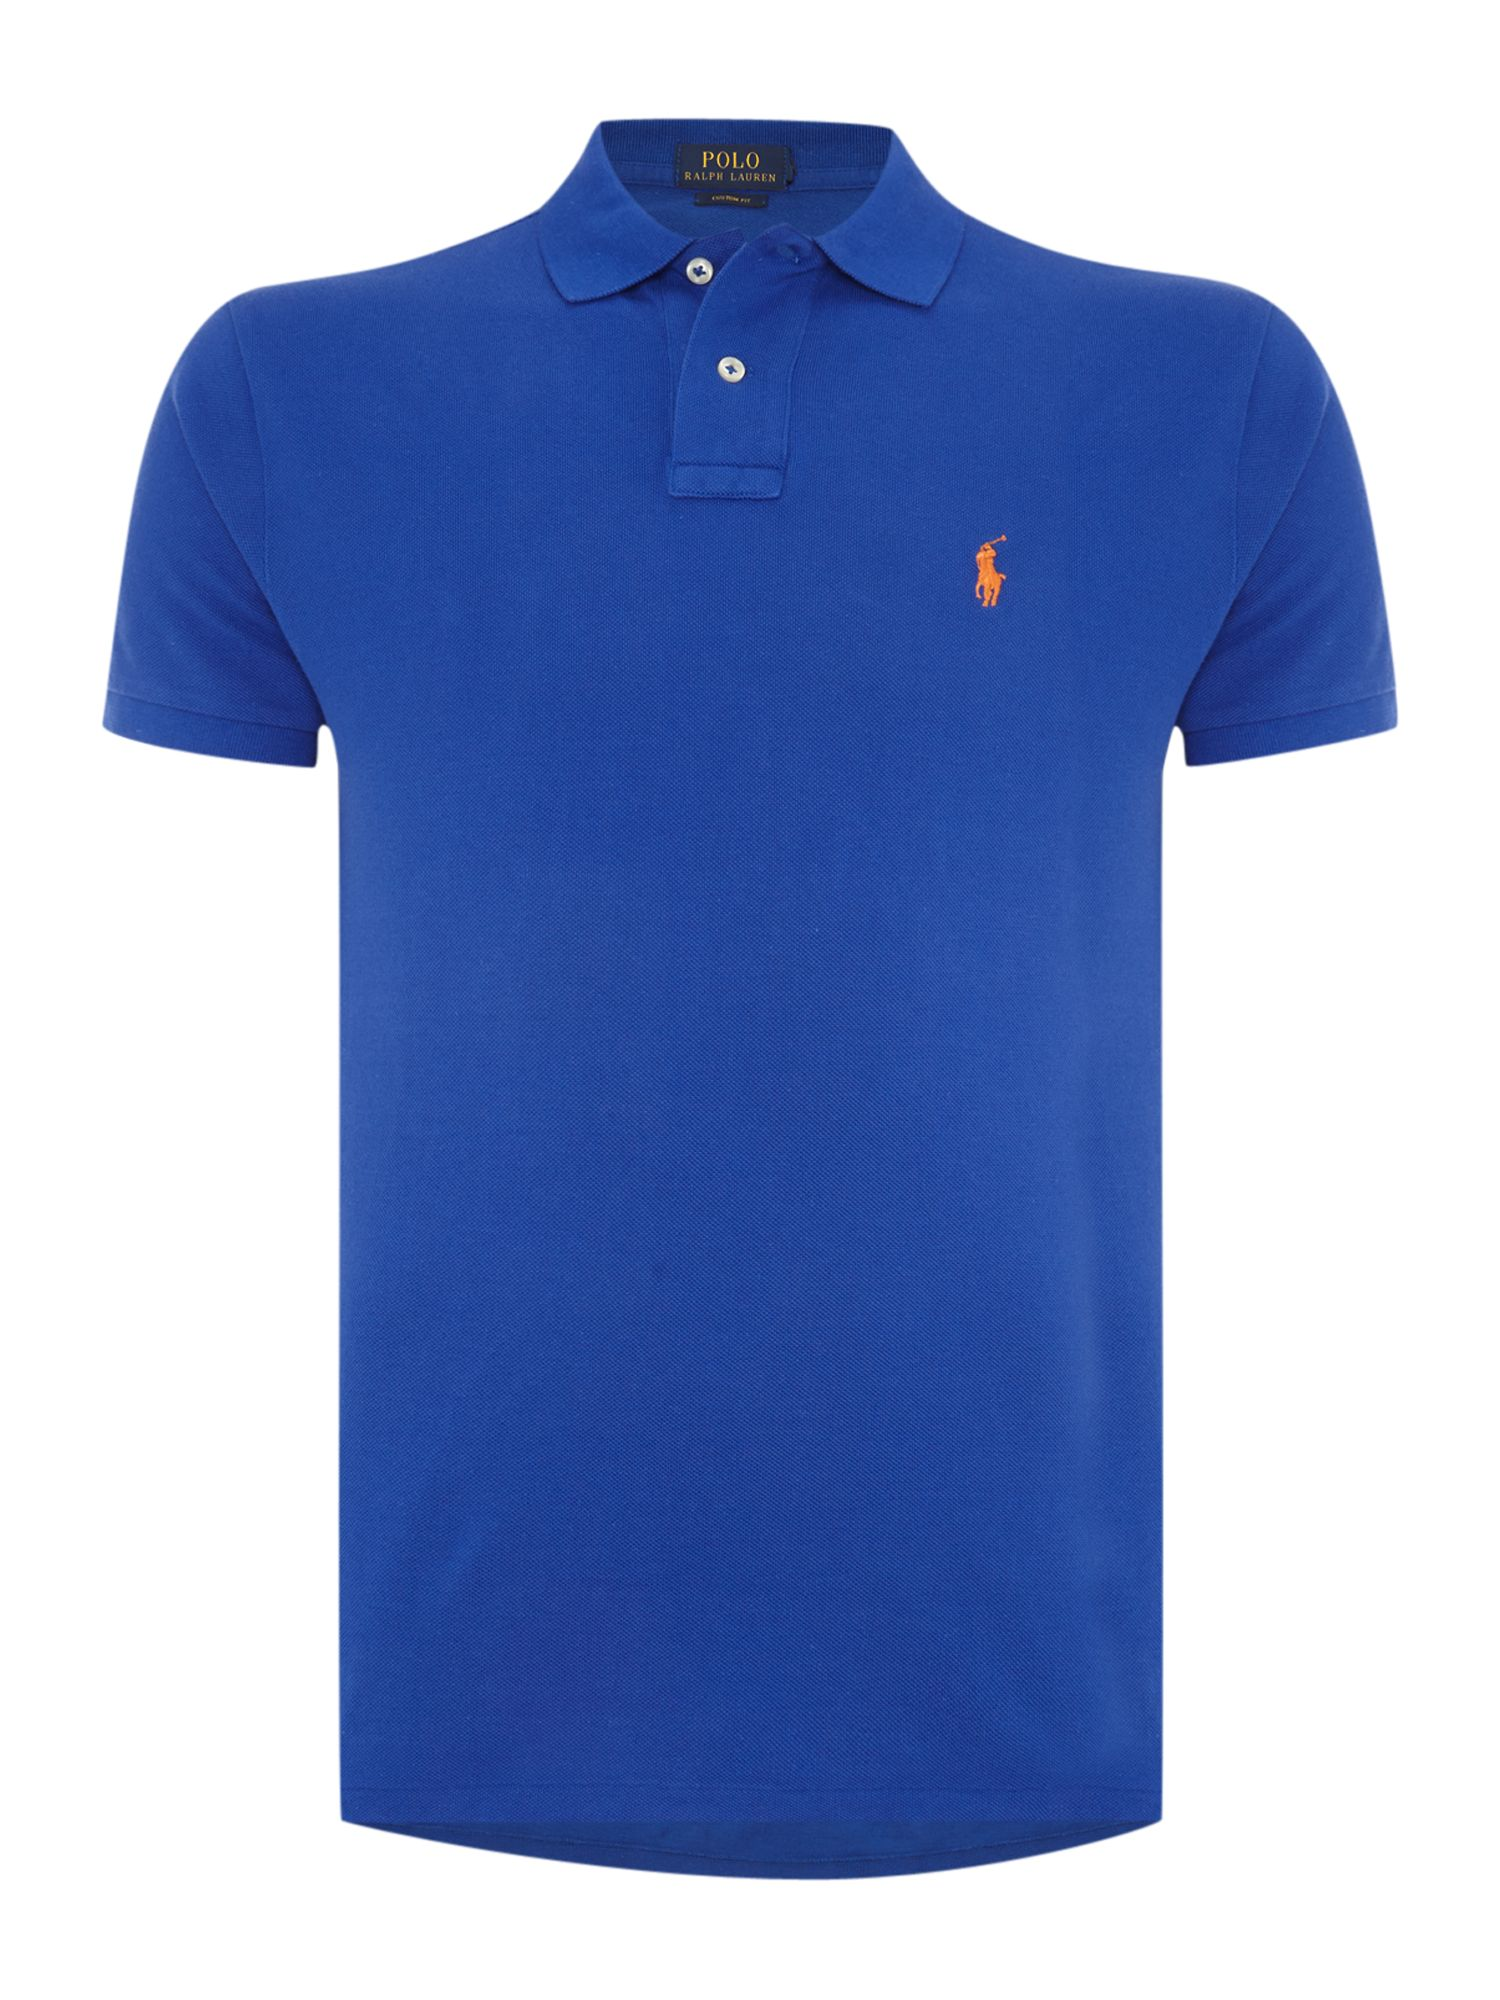 Polo Ralph Lauren. Discover the world of All-American heritage brand Polo Ralph troubnaloadka.ga for their sophisticated, modern take on classic styles, the luxury fashion house has solidified itself as a favourite amongst fashion-forward sartorialists whose personal style .